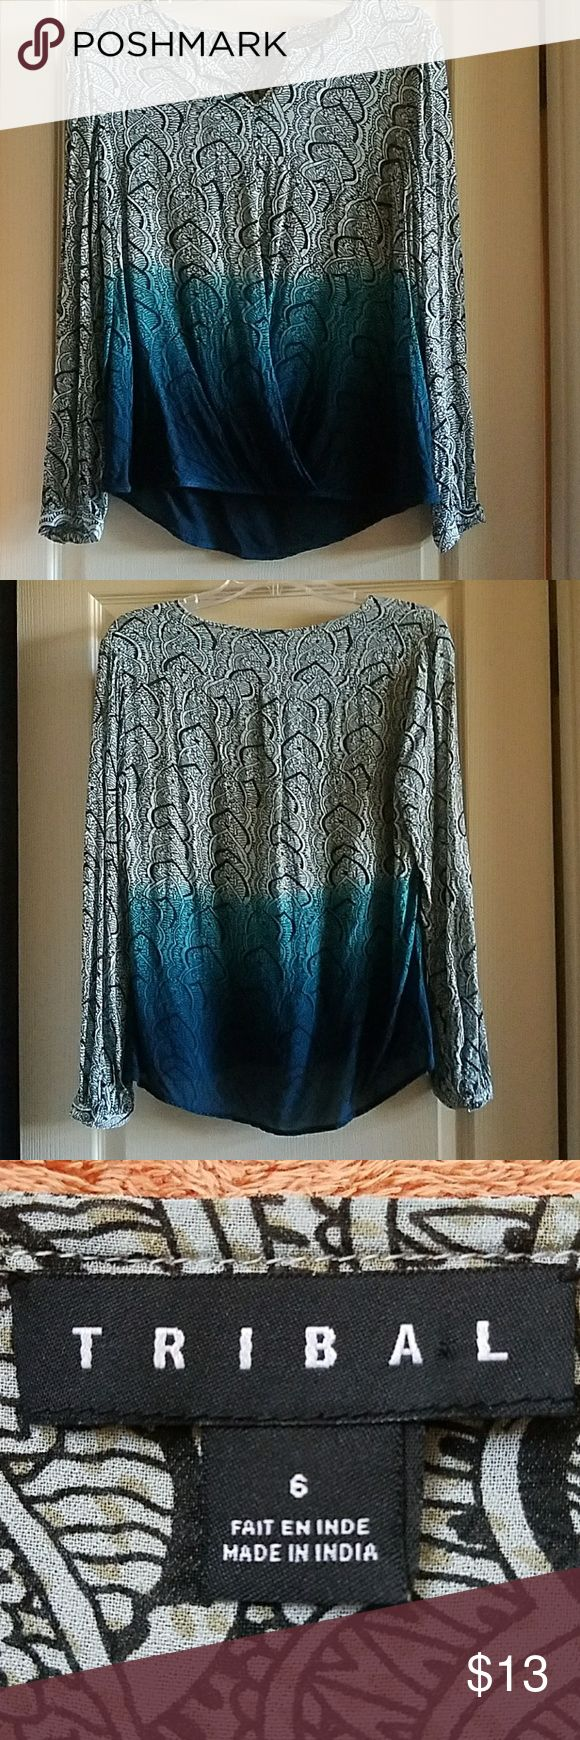 Tribal women's blouse Tribal women's blouse, teal dip dyed, long sleeve, high low hem  Rayon Size 6 Excellent, like-new condition, worn only once Tribal Tops Blouses